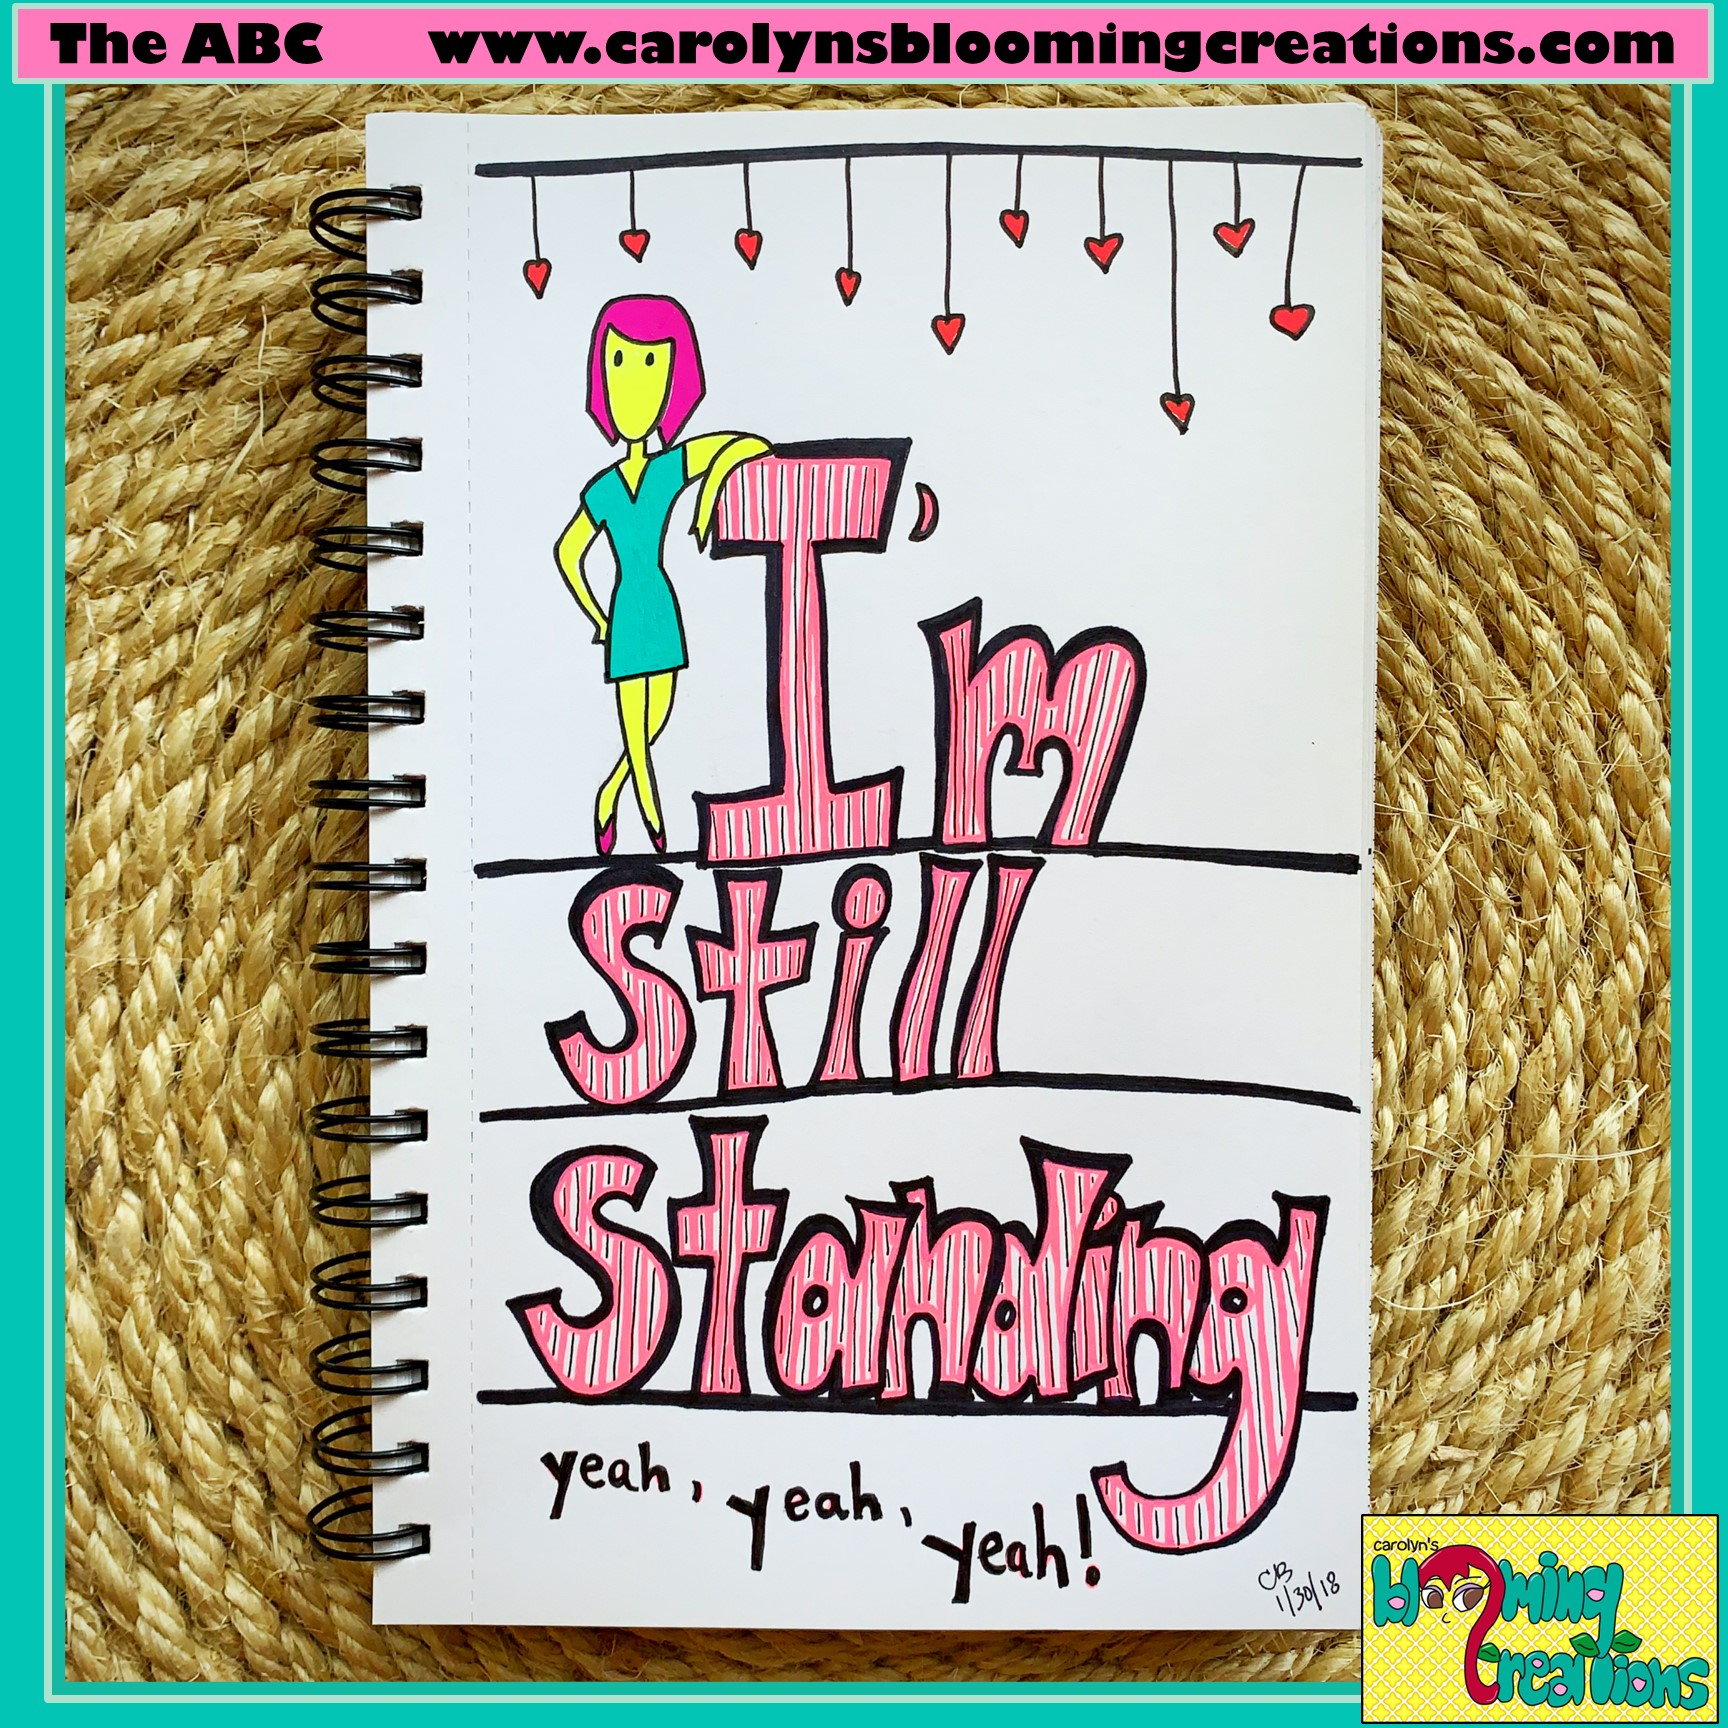 Pin me! www.carolynsbloomingcreations.com  Art created by Carolyn J. Braden, Media: Faber Castell PITT pens, Sakura Gelly Roll pens, BIC pencil on paper